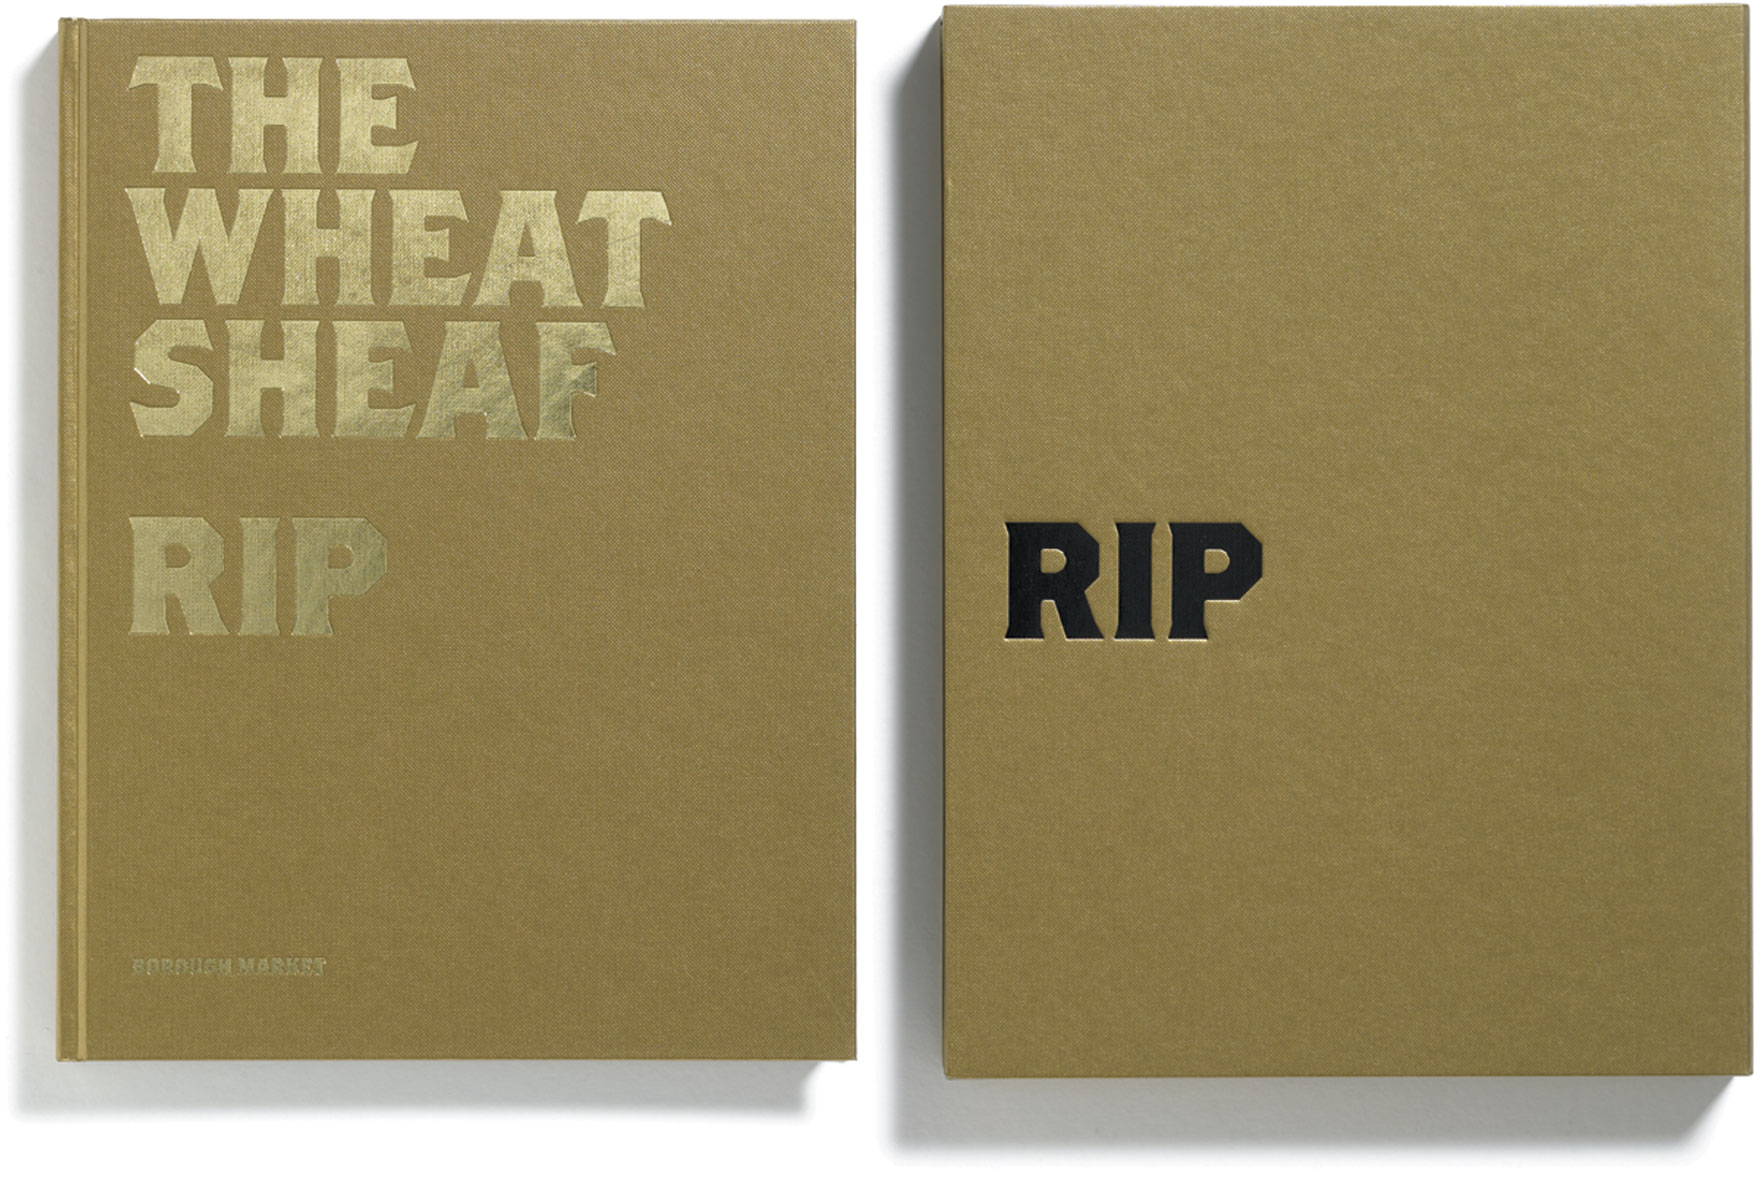 The Wheatsheaf RIP, John Ross, published by Browns Editions, designed by Browns Design, book